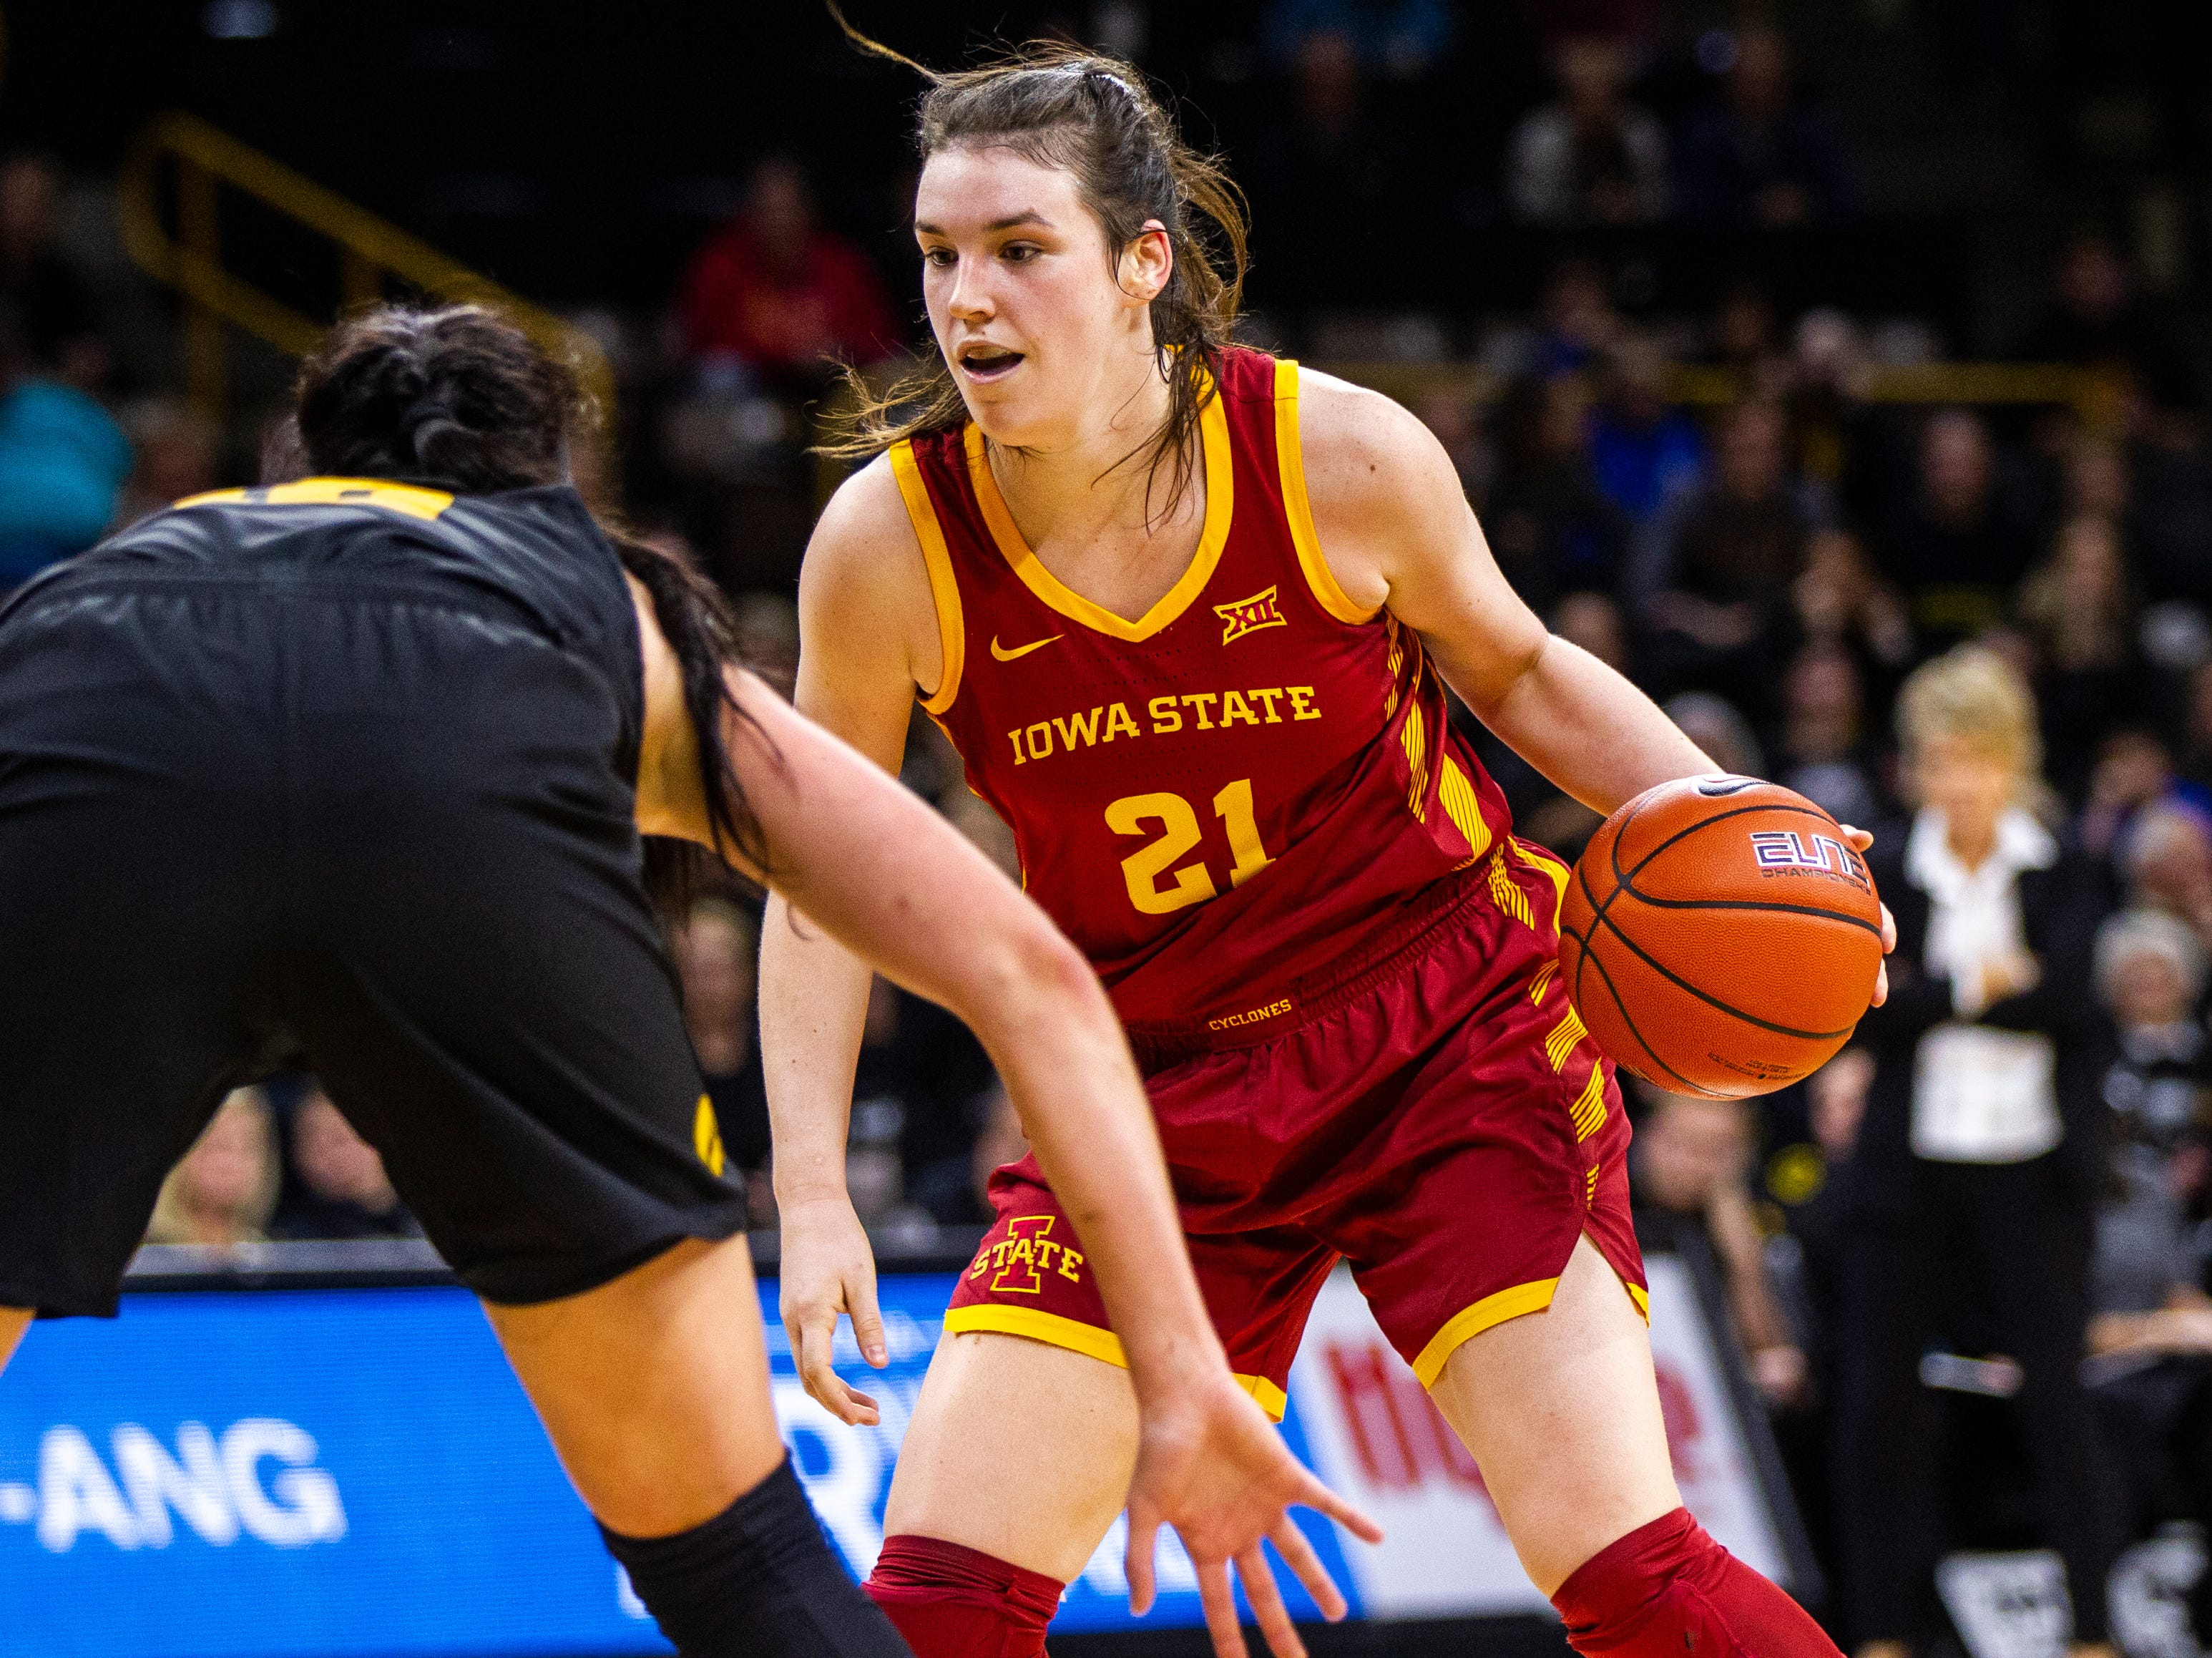 Iowa State guard Bridget Carleton (21) looks to the basket during a Cy-Hawk series NCAA women's basketball game on Wednesday, Dec. 5, 2018, at Carver-Hawkeye Arena in Iowa City.